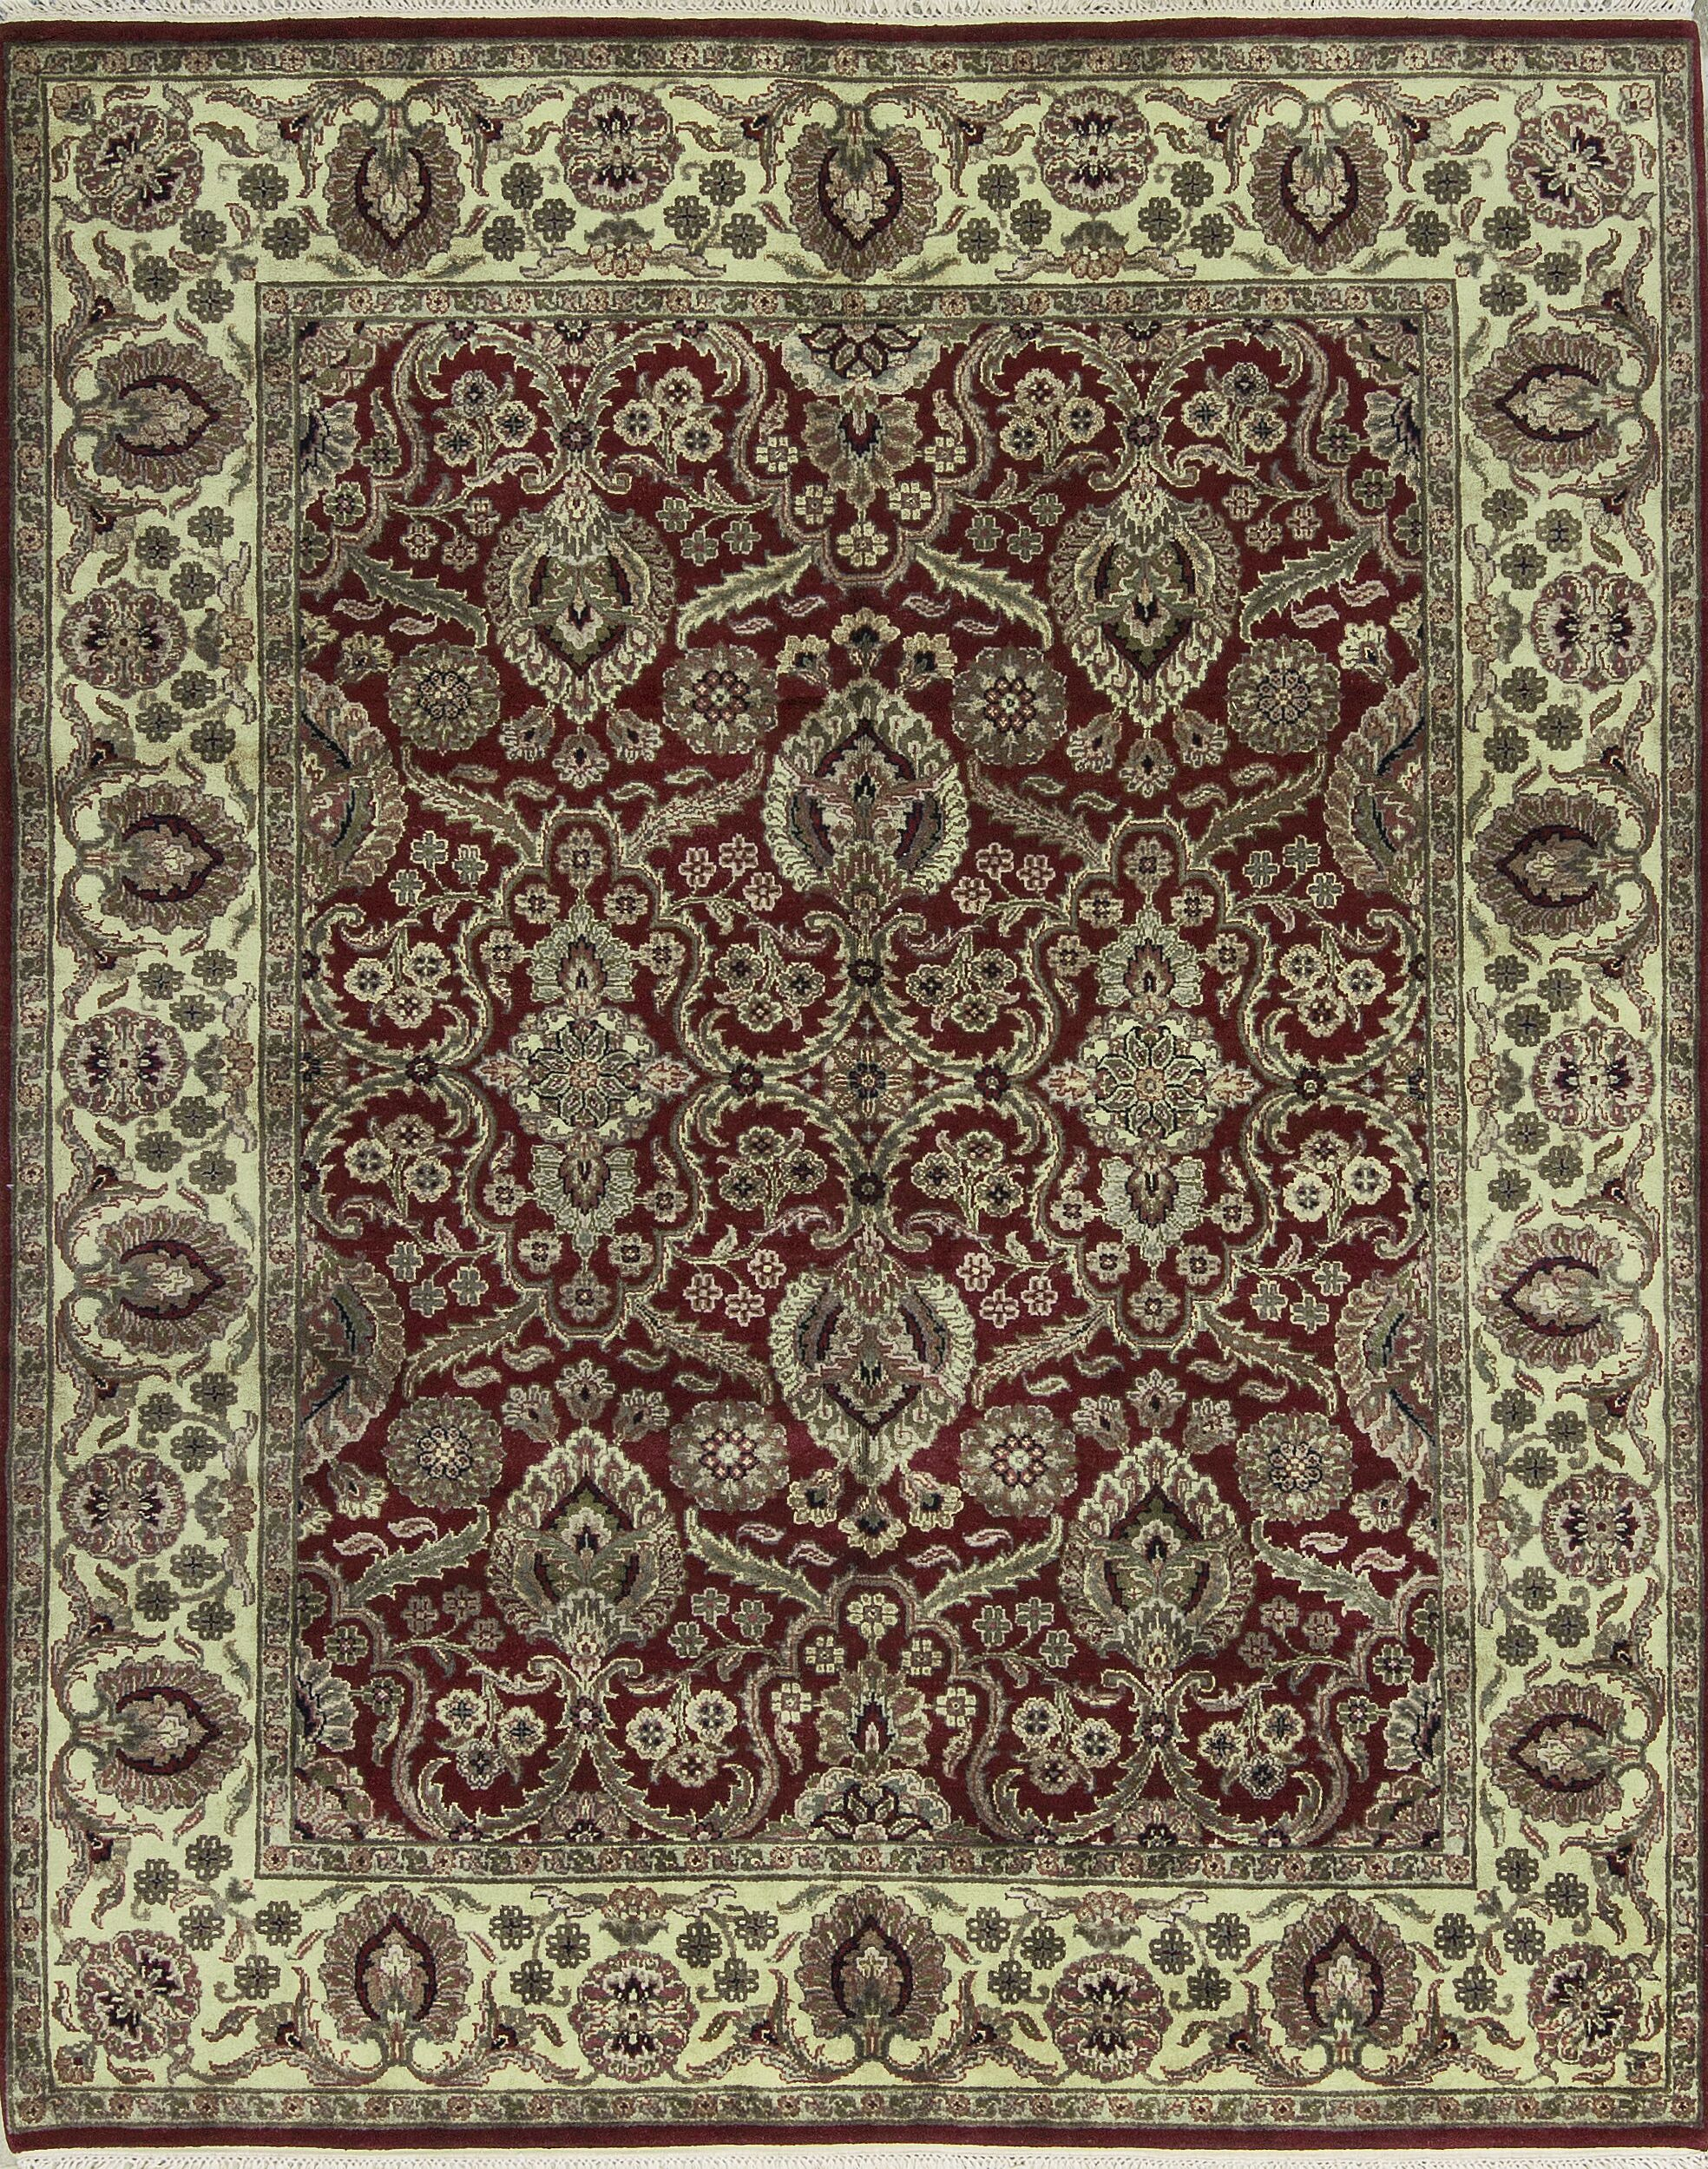 One-of-a-Kind Handwoven Wool Red/Ivory Indoor Area Rug